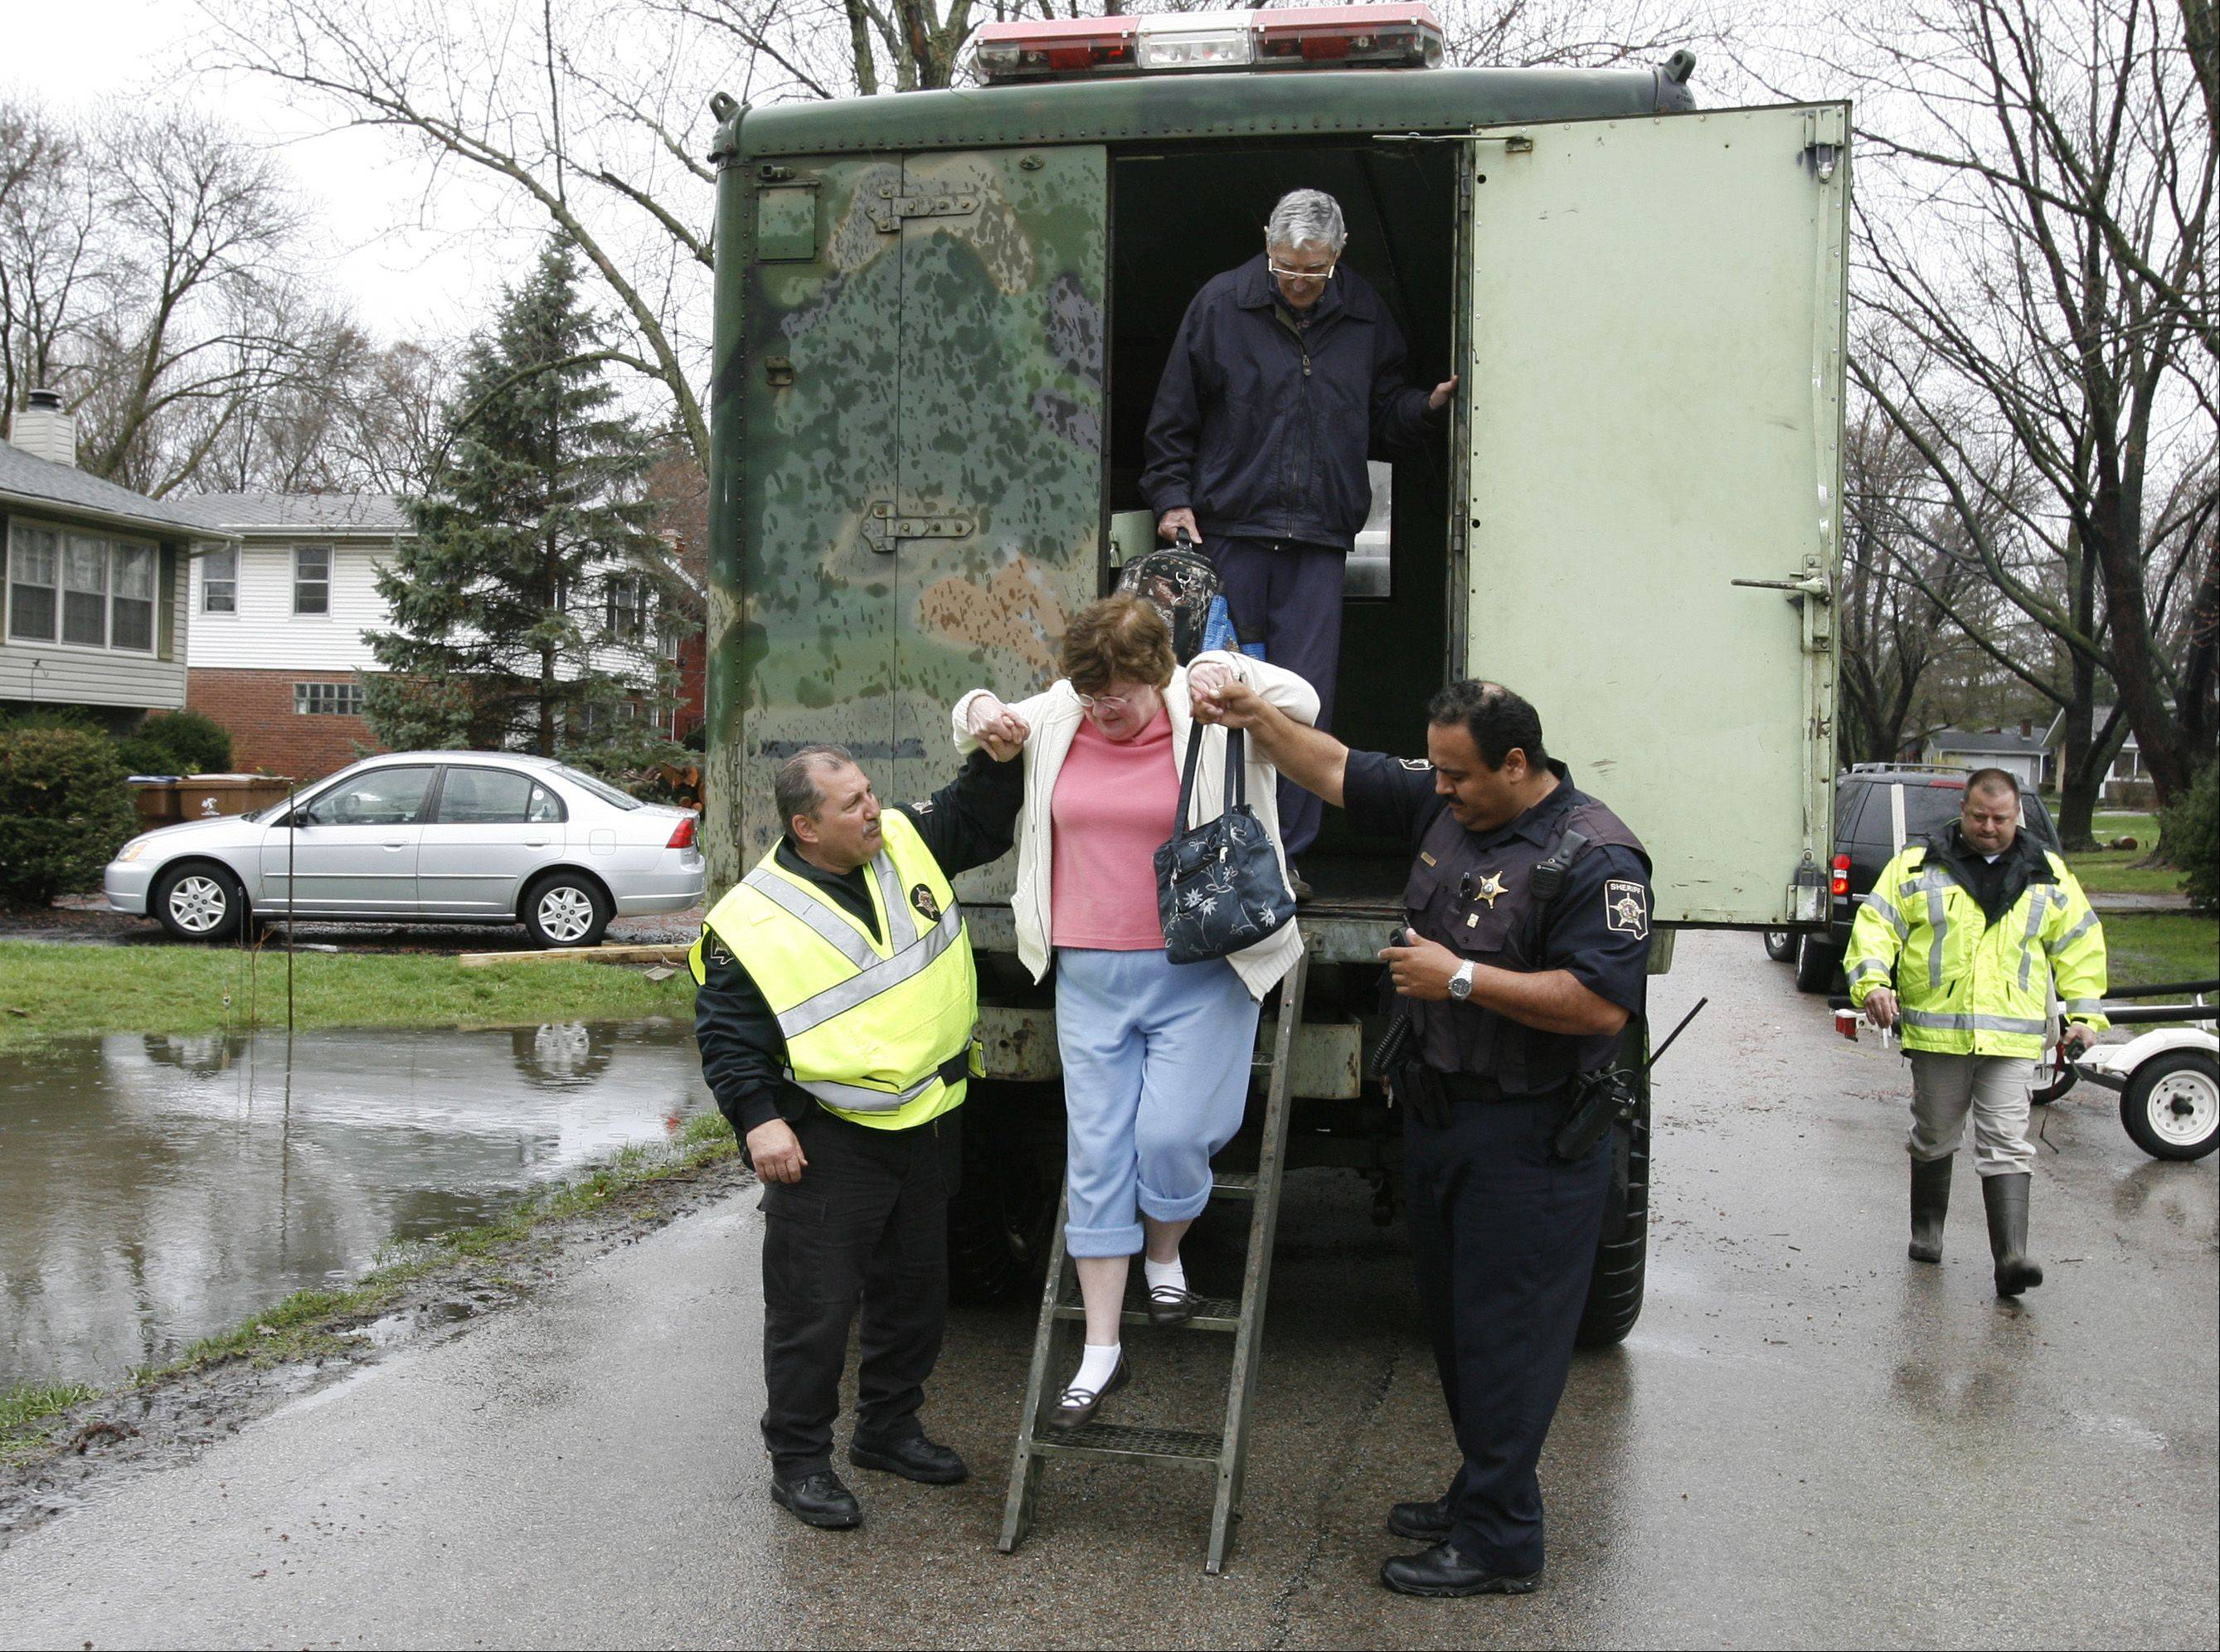 DuPage County sheriff's deputies assist a resident who was rescued from her flooded home in the Valley View subdivision near Glen Ellyn.